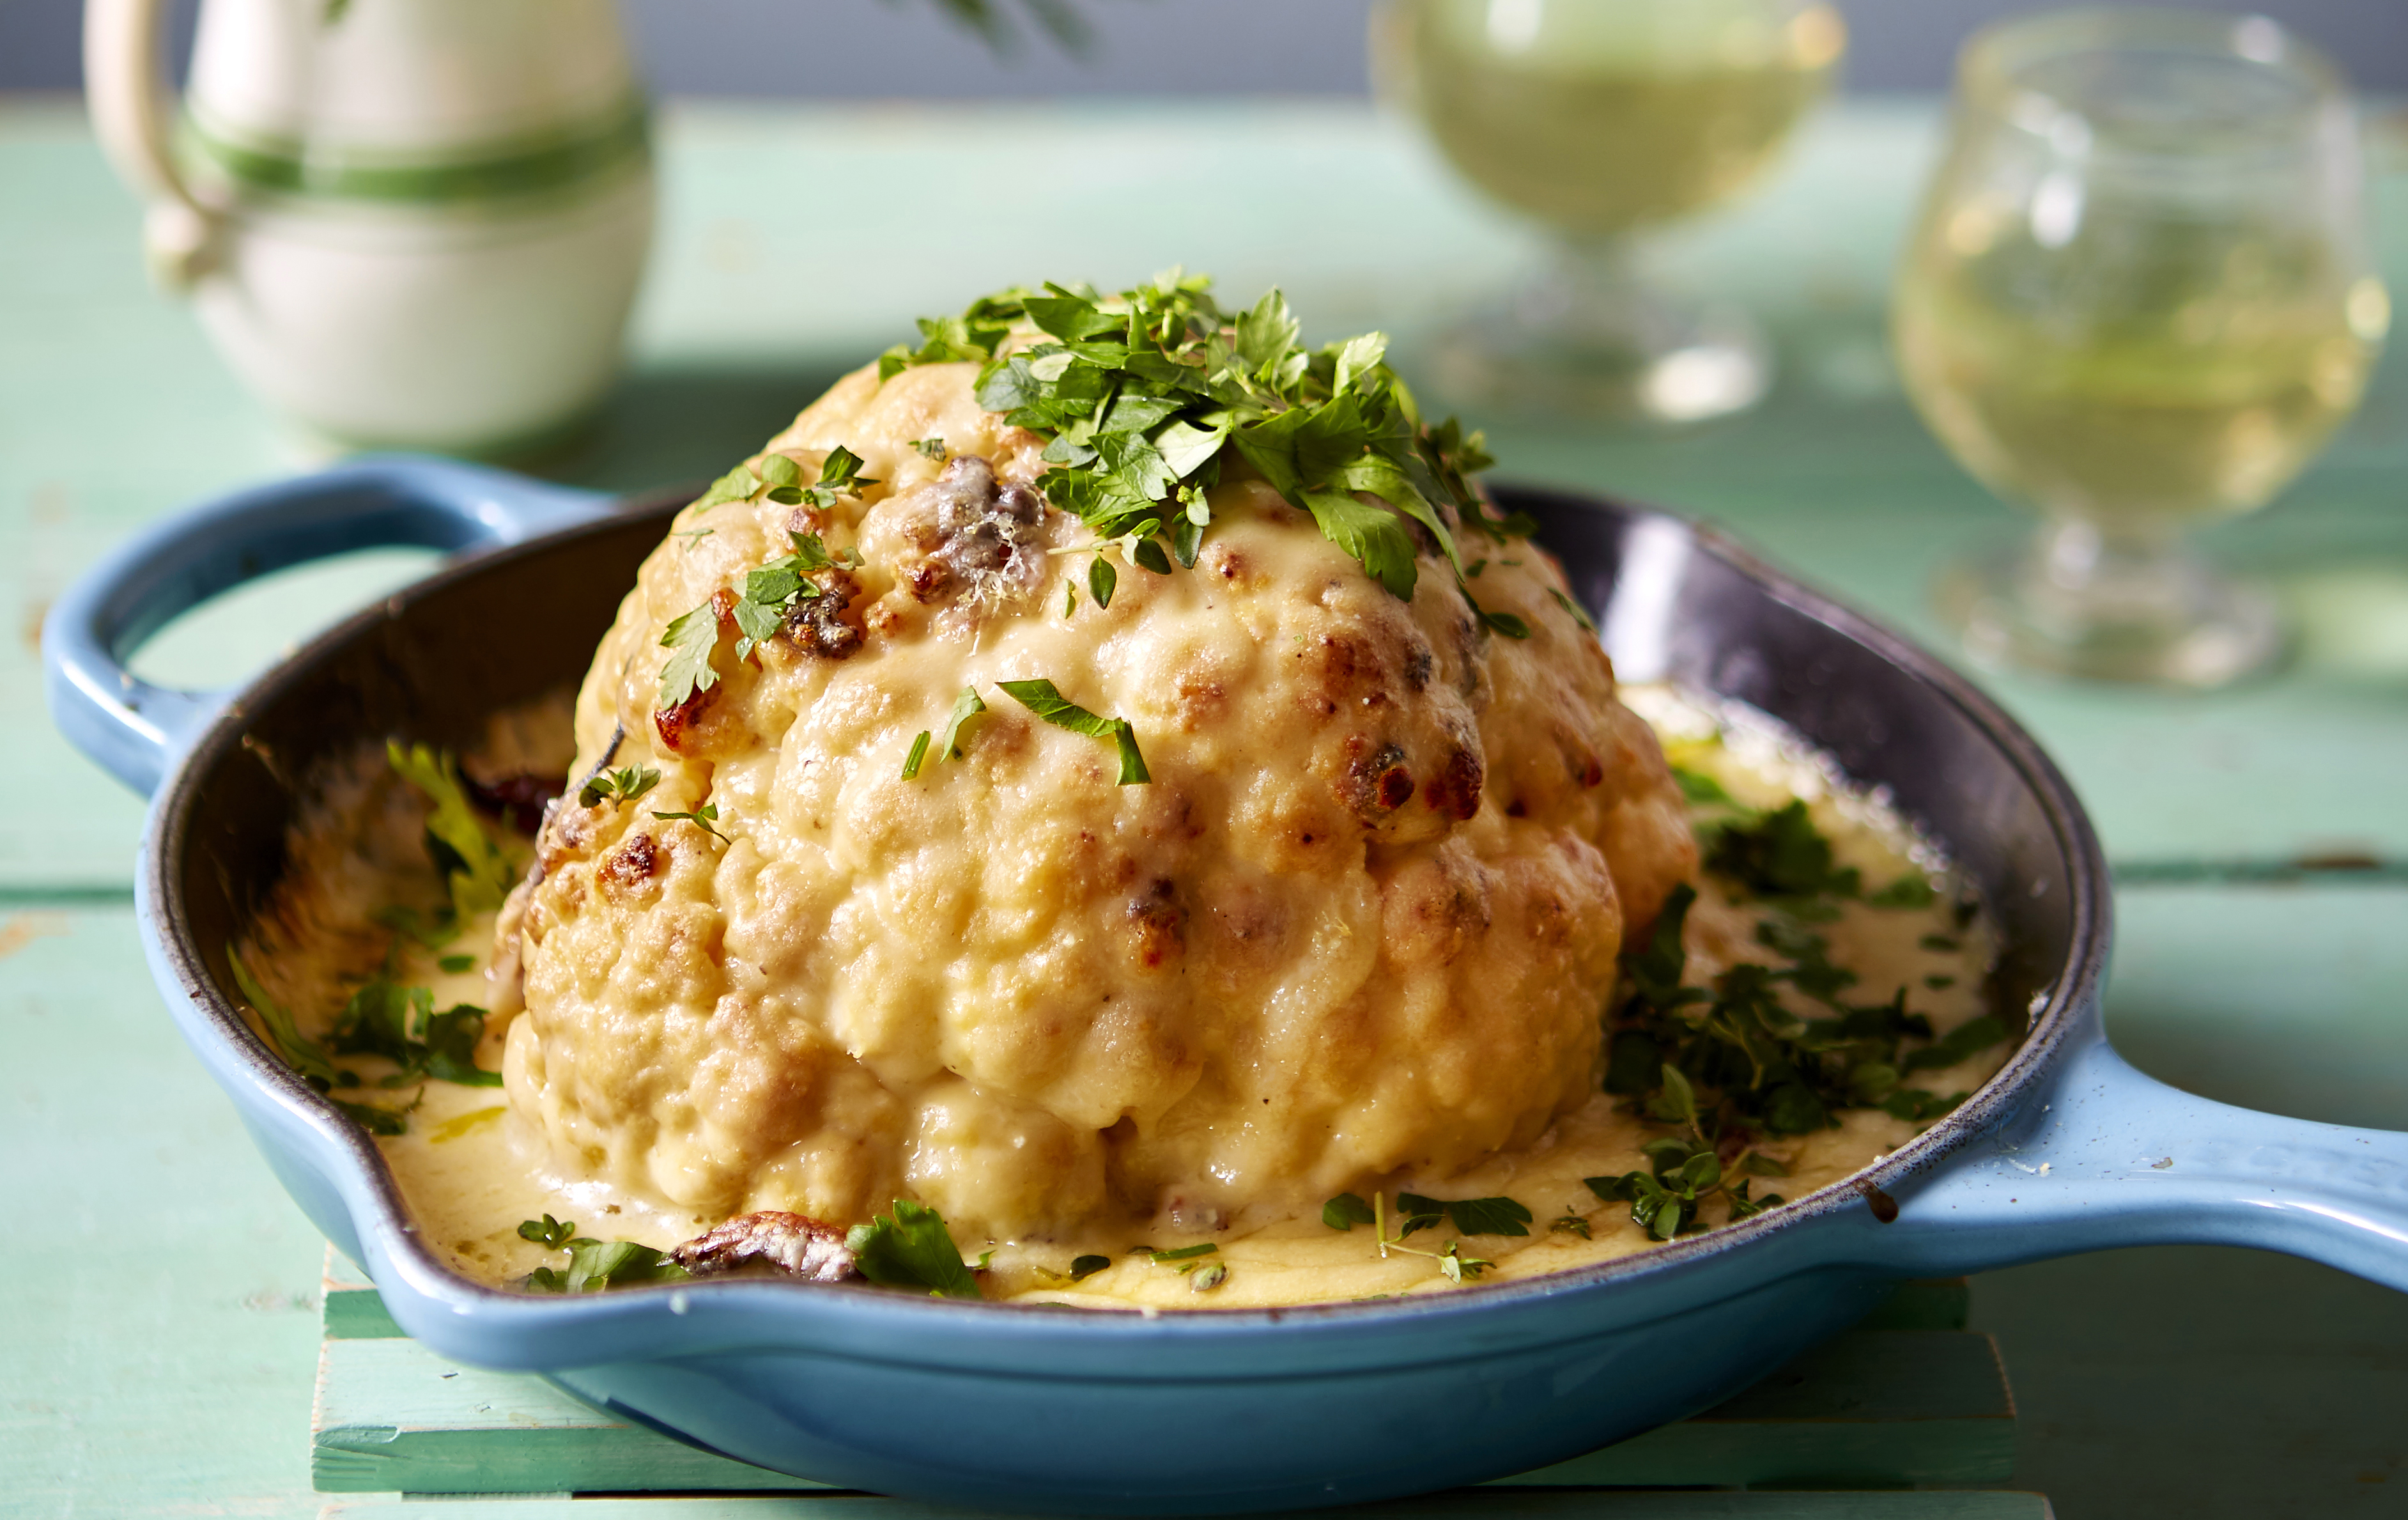 Whole roasted cauliflower with thyme and cheese sauce